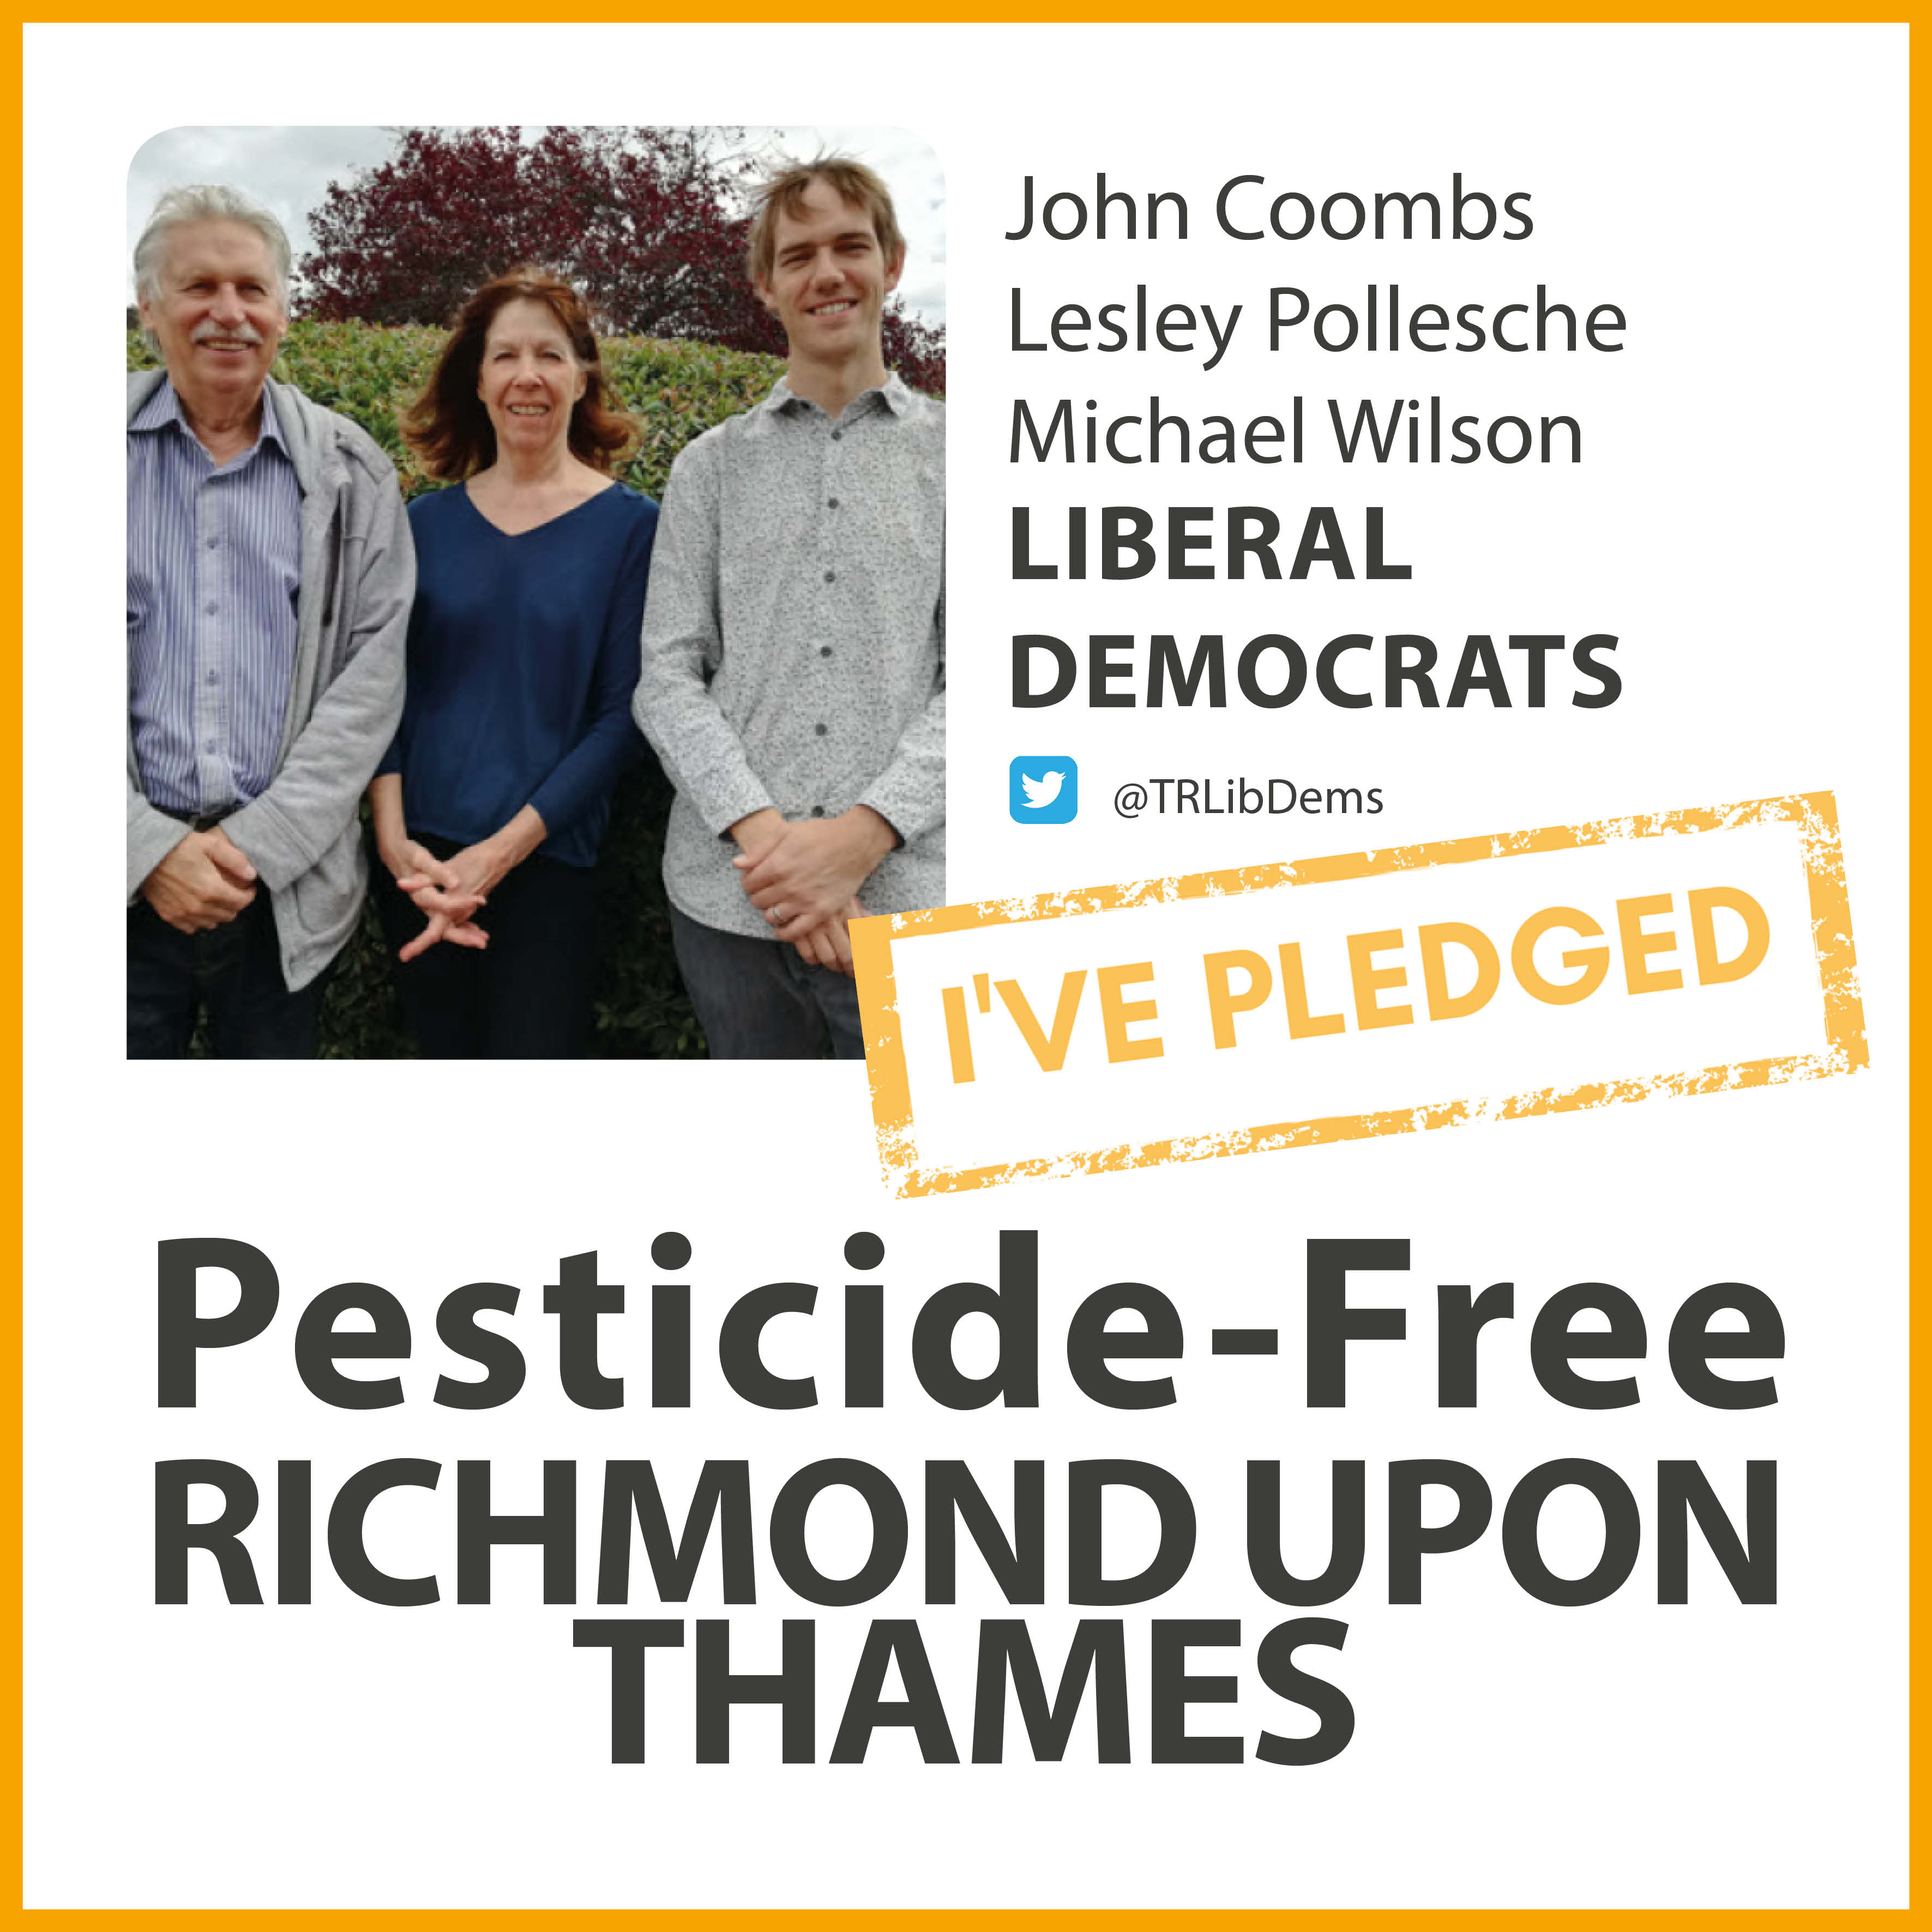 Heathfield Lib Dems have taken the pesticide-free pledge